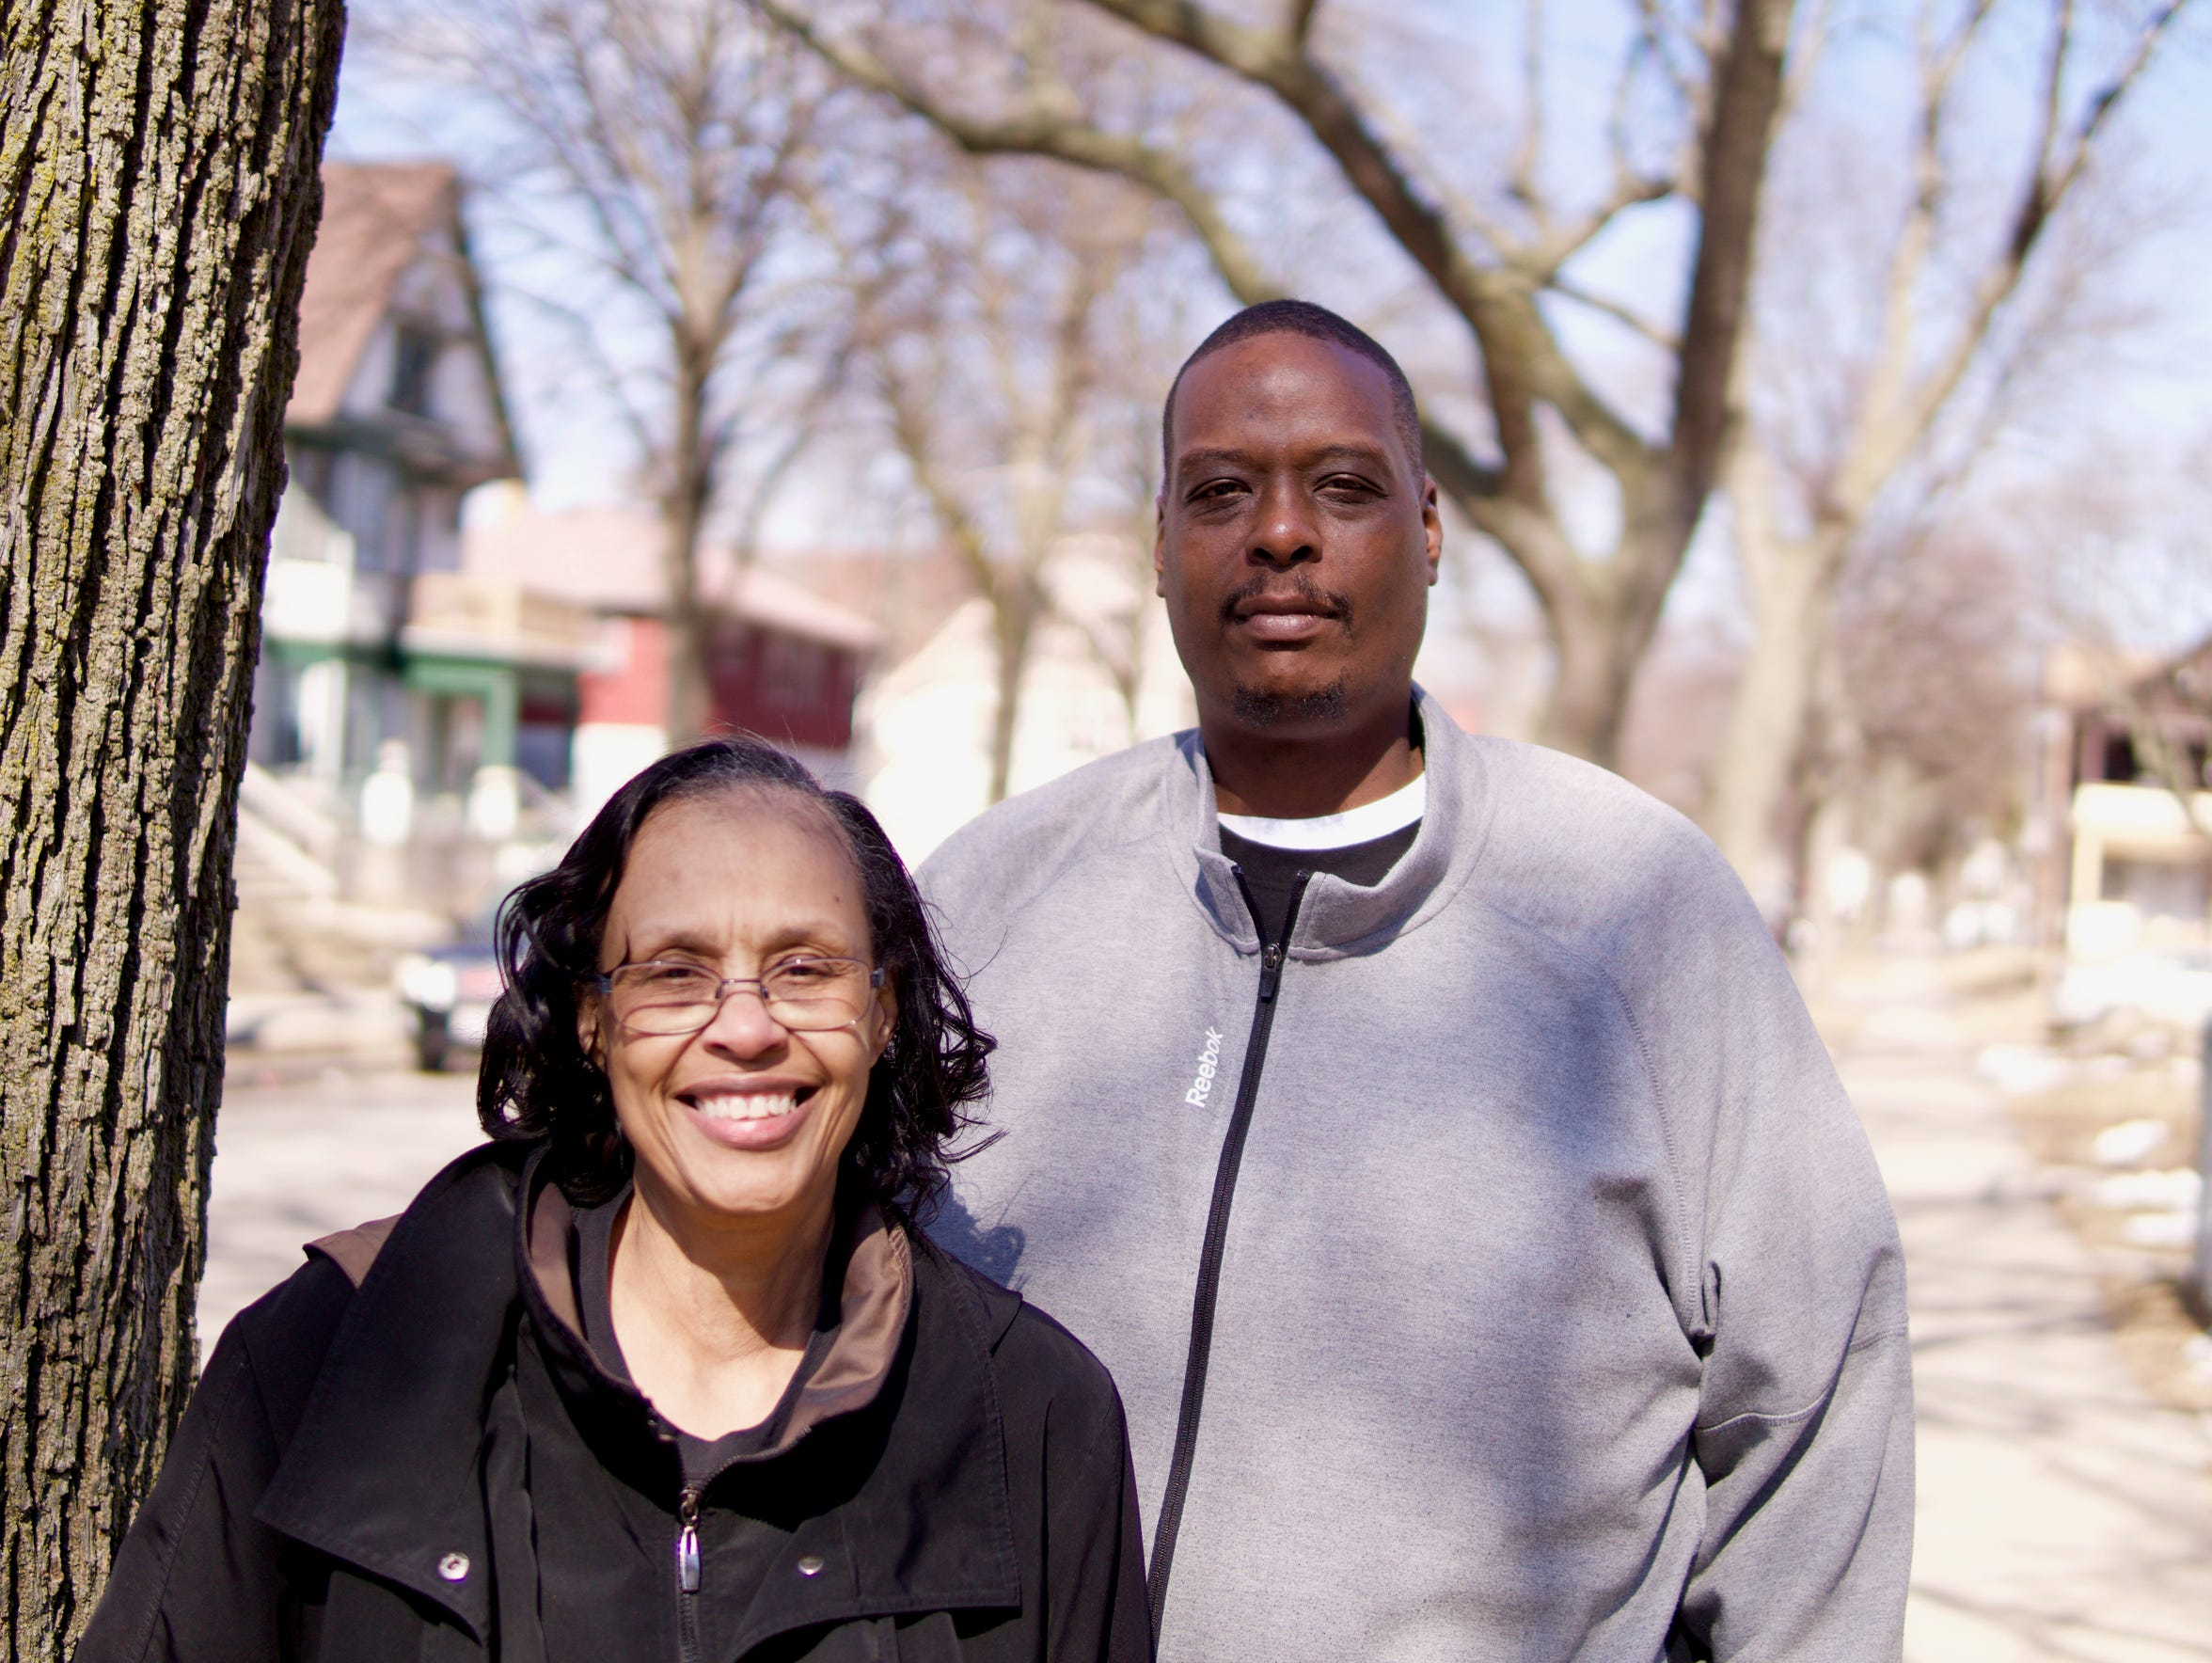 Josephine Key and her son, James, help run a block group on N. Buffum St., in Milwaukee.